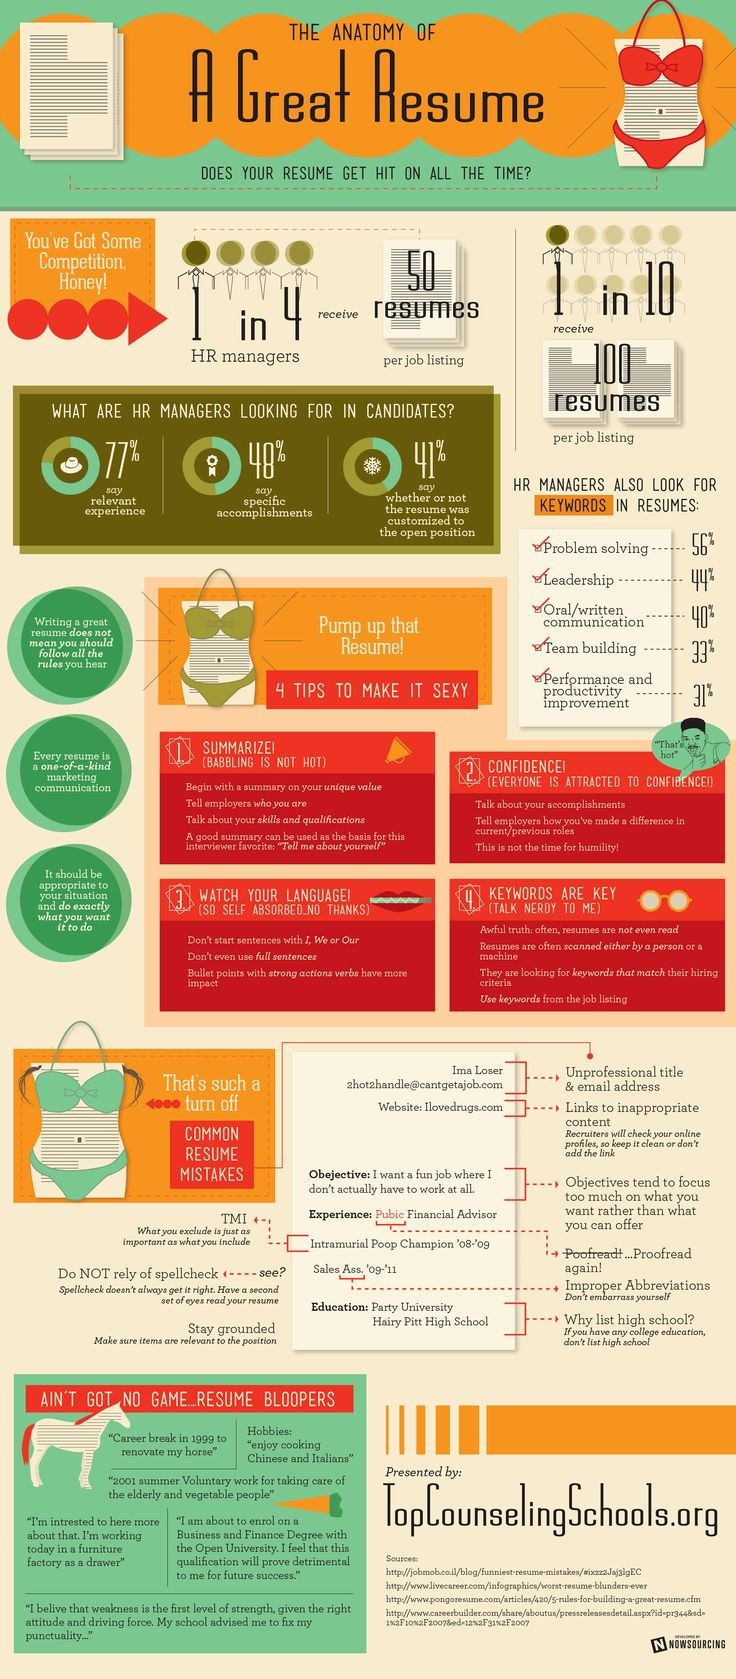 53 best images about resume writing on pinterest resume tips